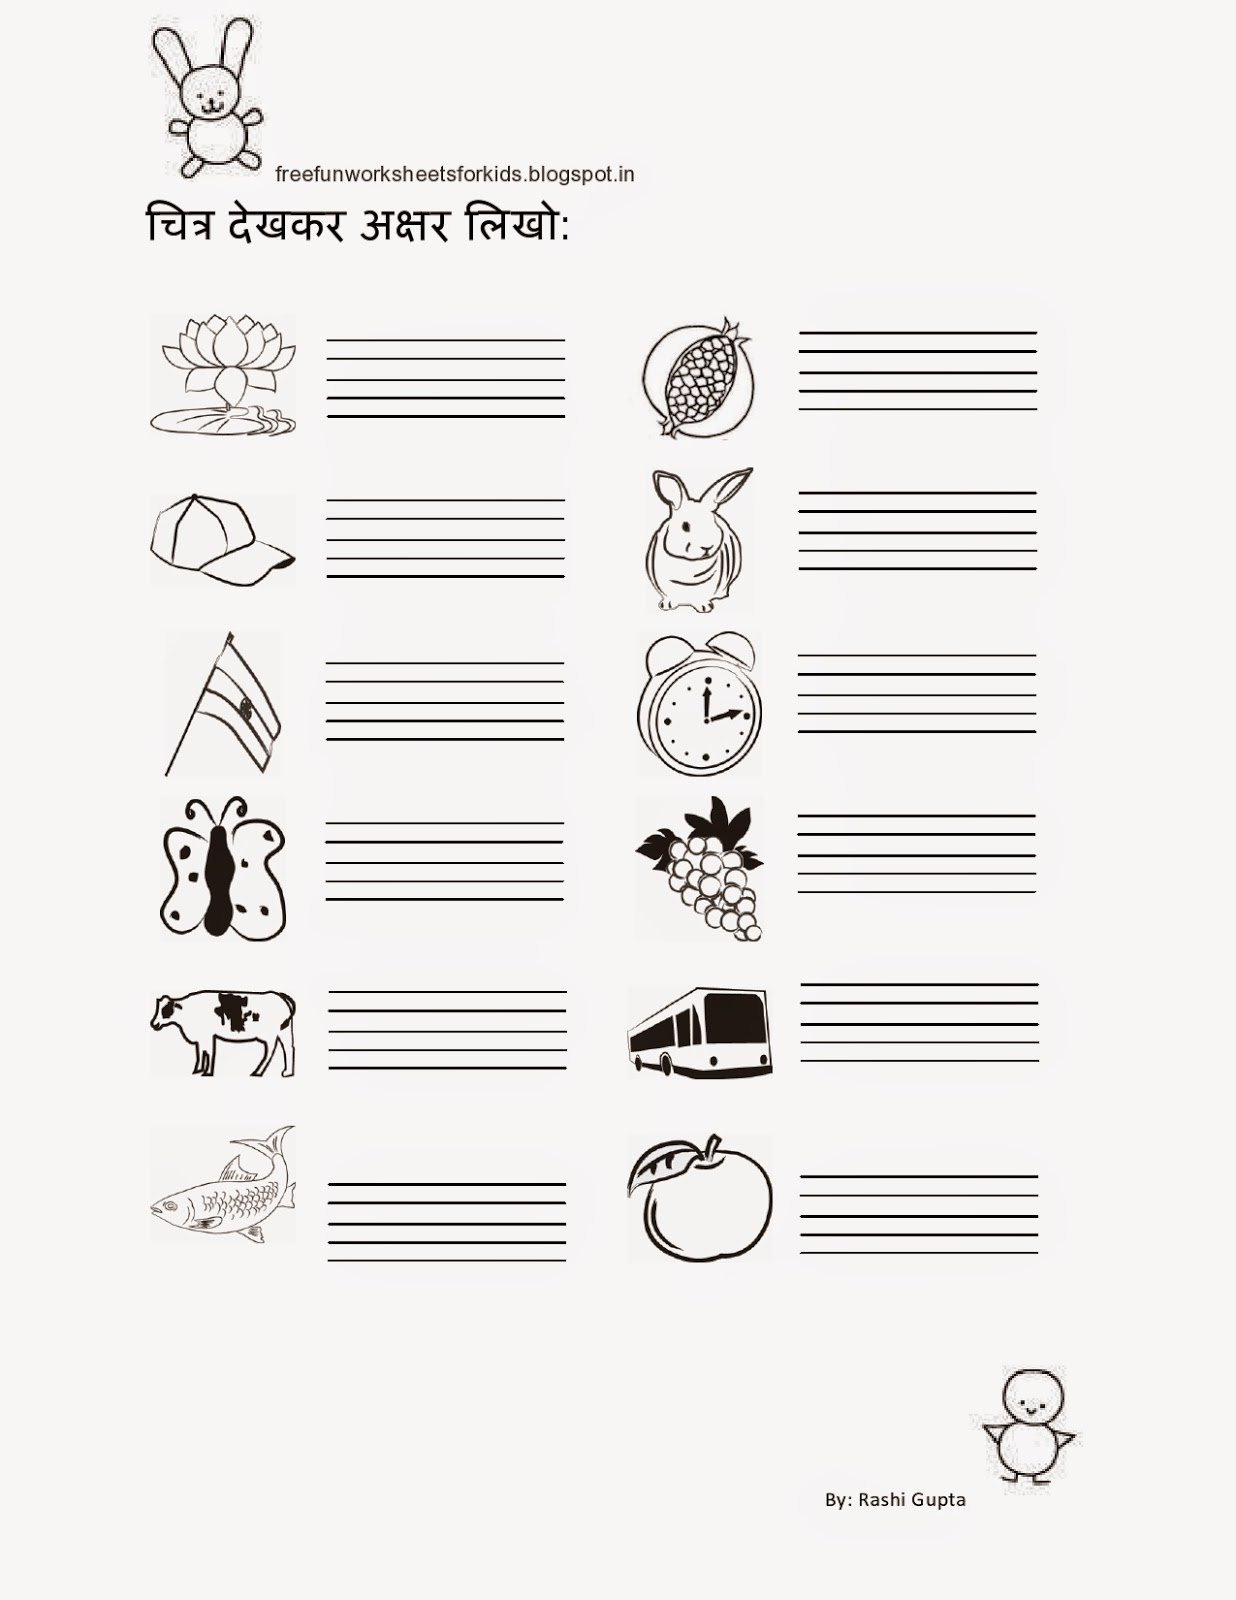 Fun Worksheets For Kids: Free Printable Fun Hindi Worksheets for Class ...